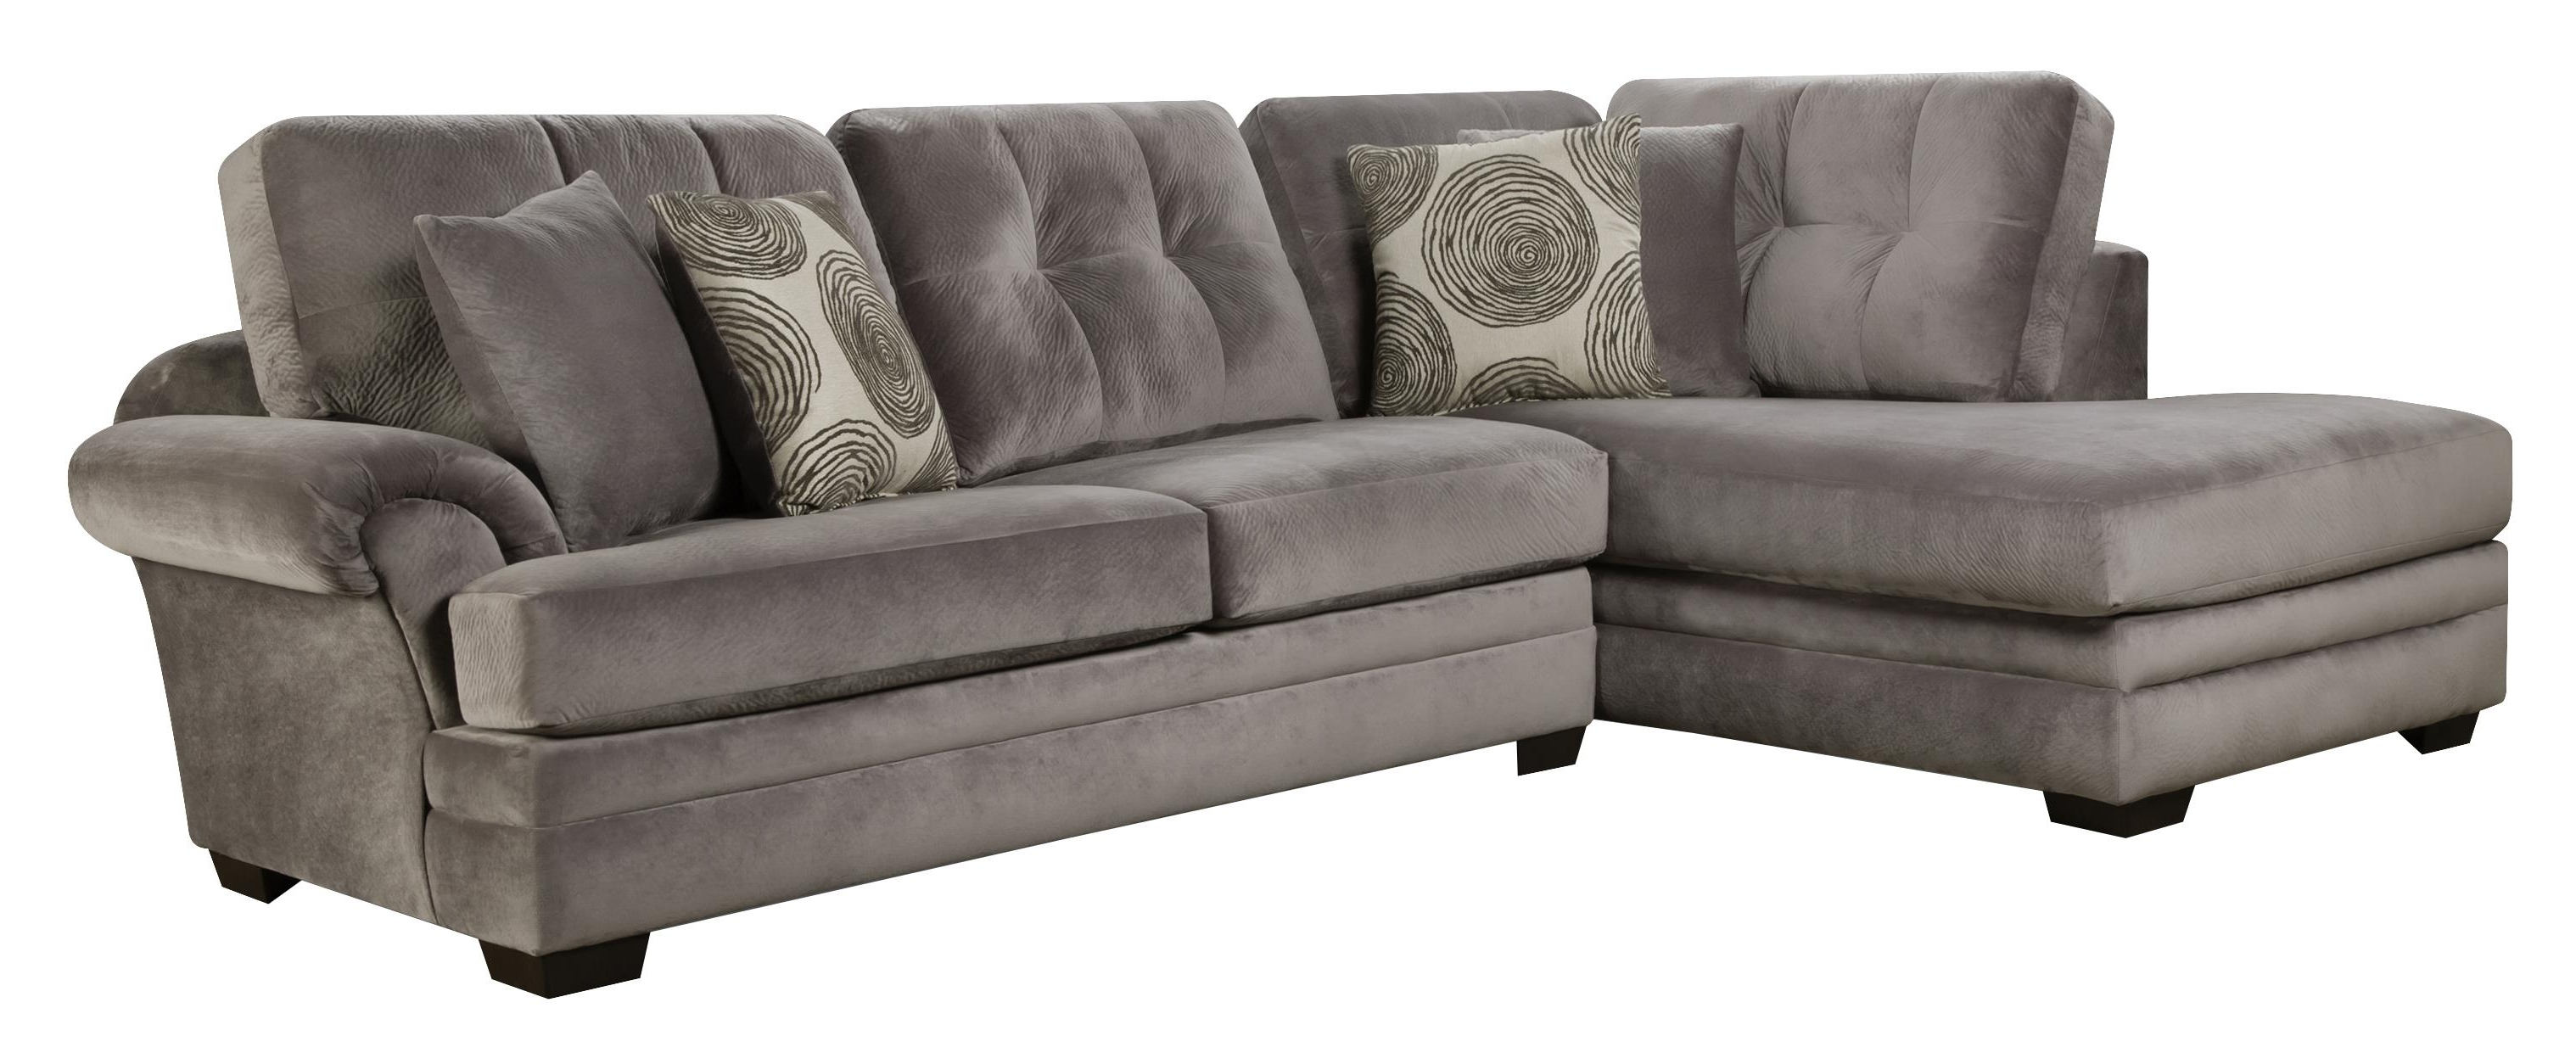 Sectional Sofas With Chaise Within 2017 Sectional Sofa With Chaise (On Left Side)Corinthian (View 14 of 15)